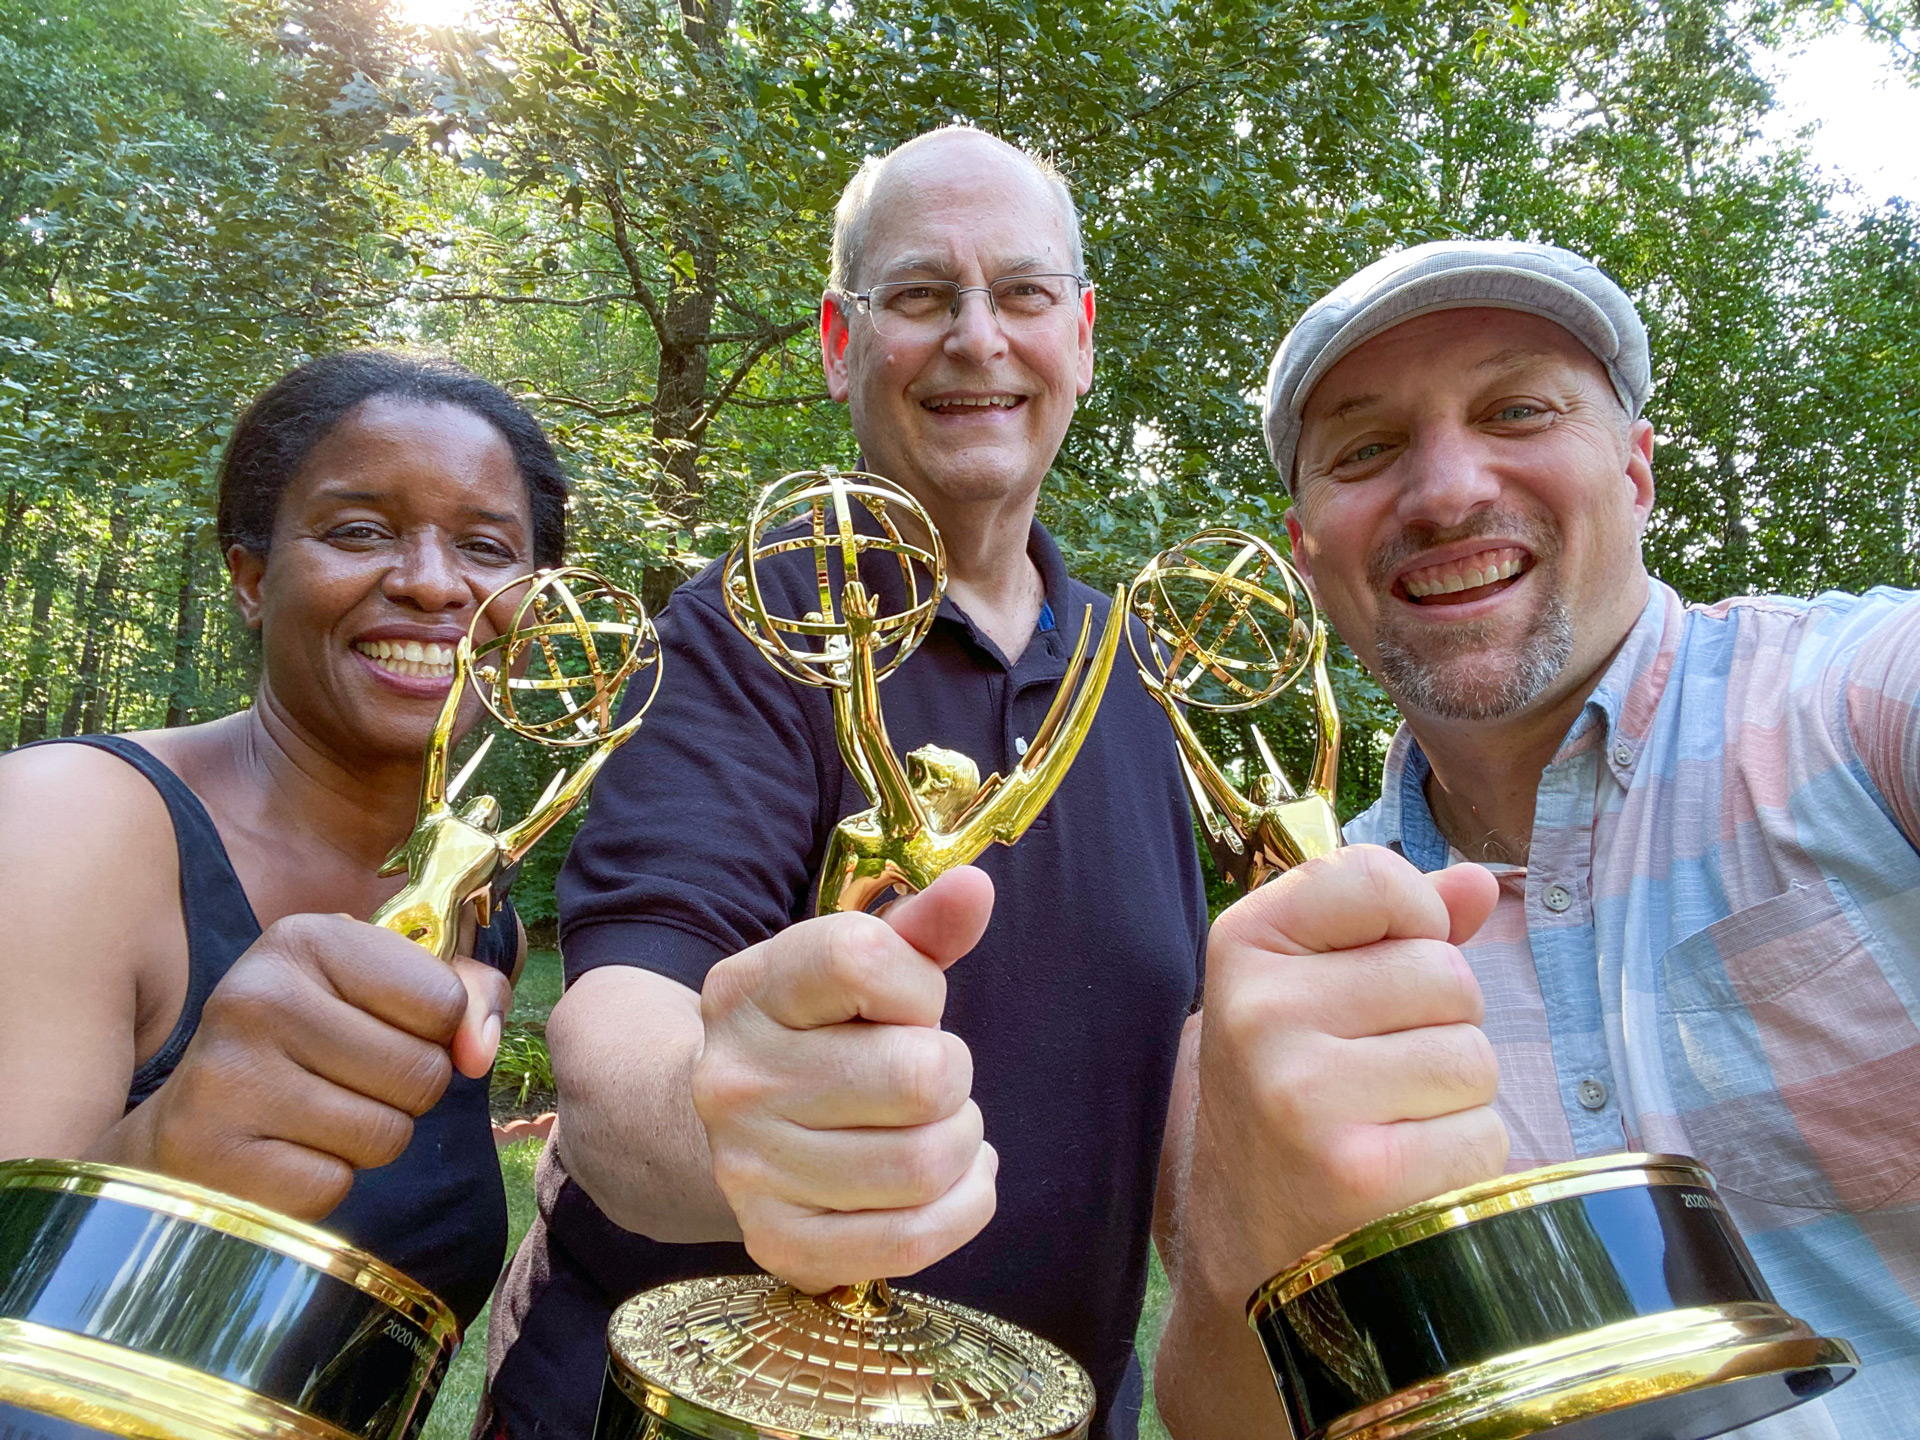 Emmy Award winners pose for a photo with their awards